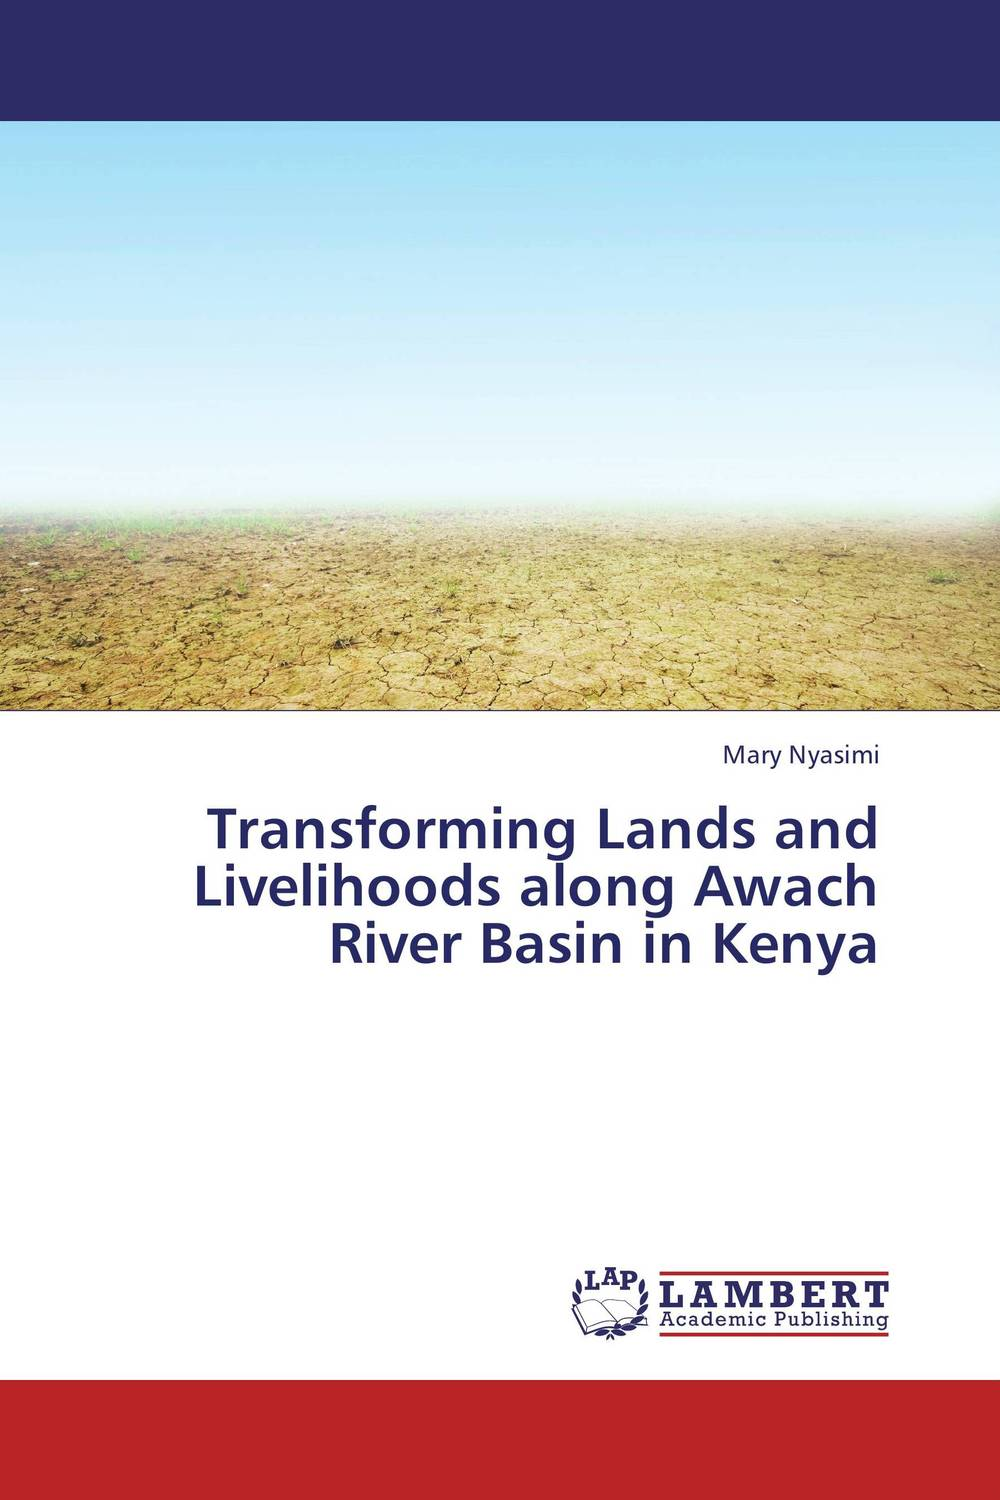 Transforming Lands and Livelihoods along Awach River Basin in Kenya